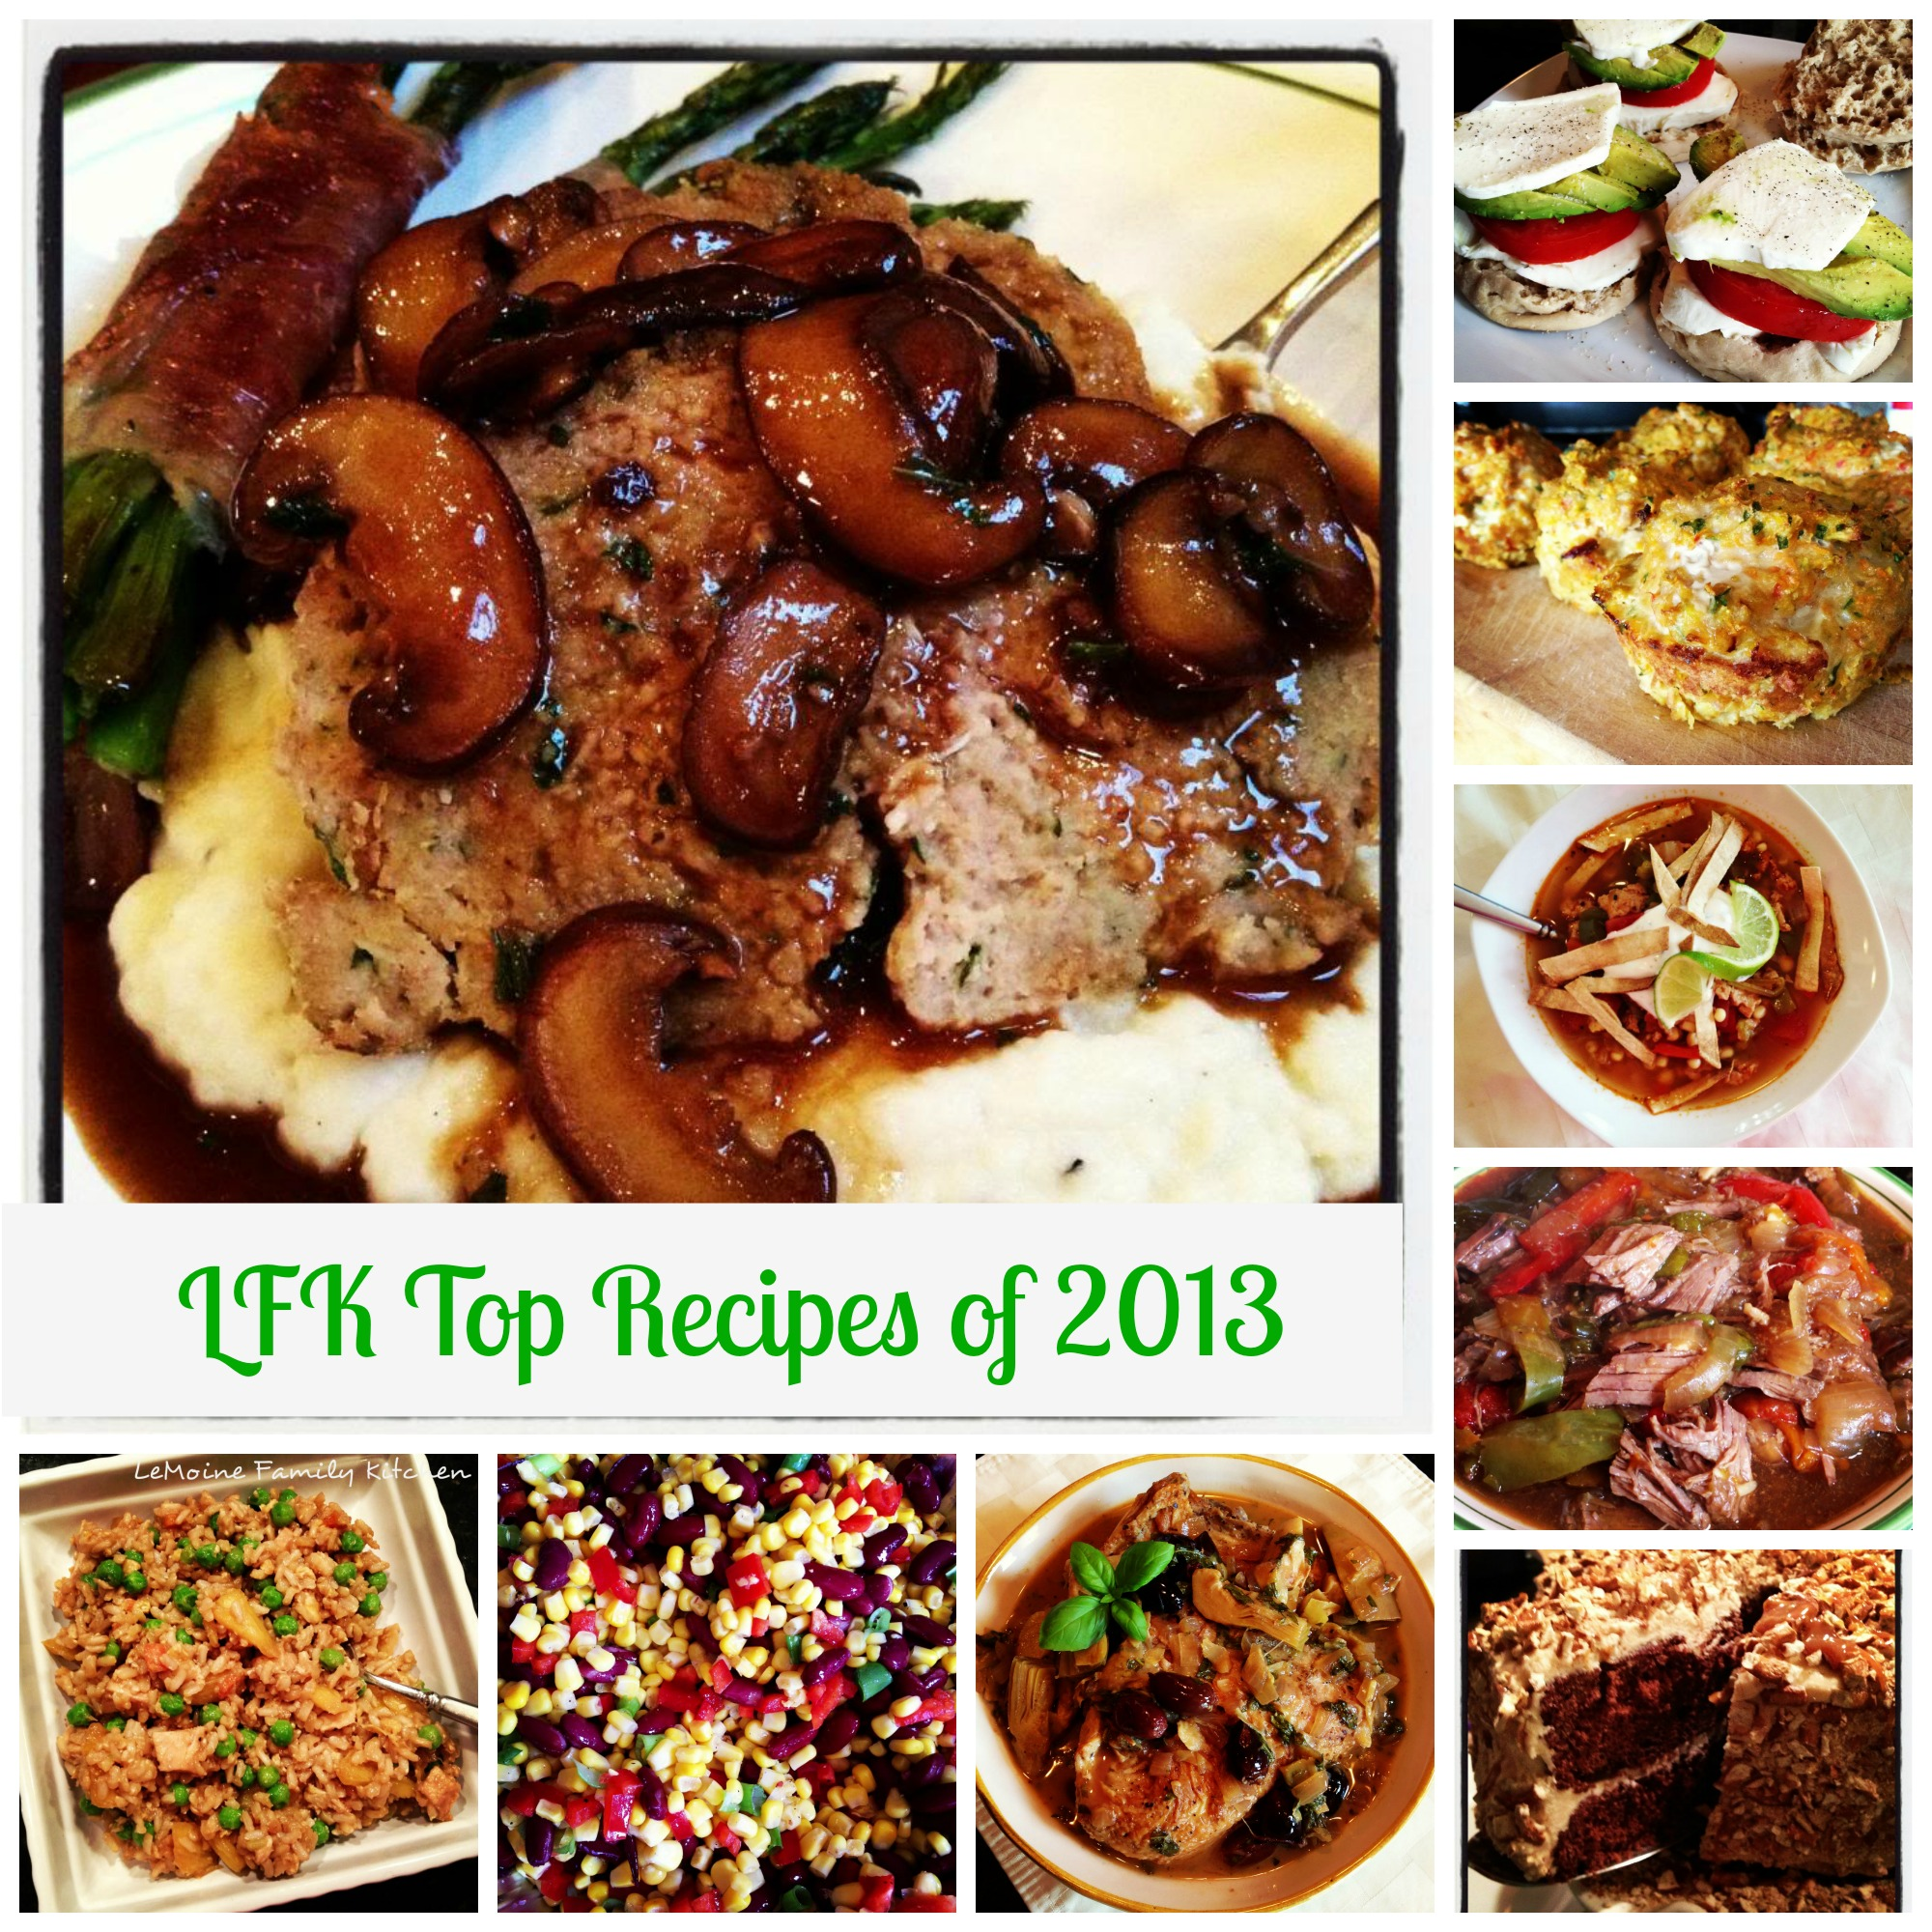 LeMoine Family Kitchen Top Recipes of 2013